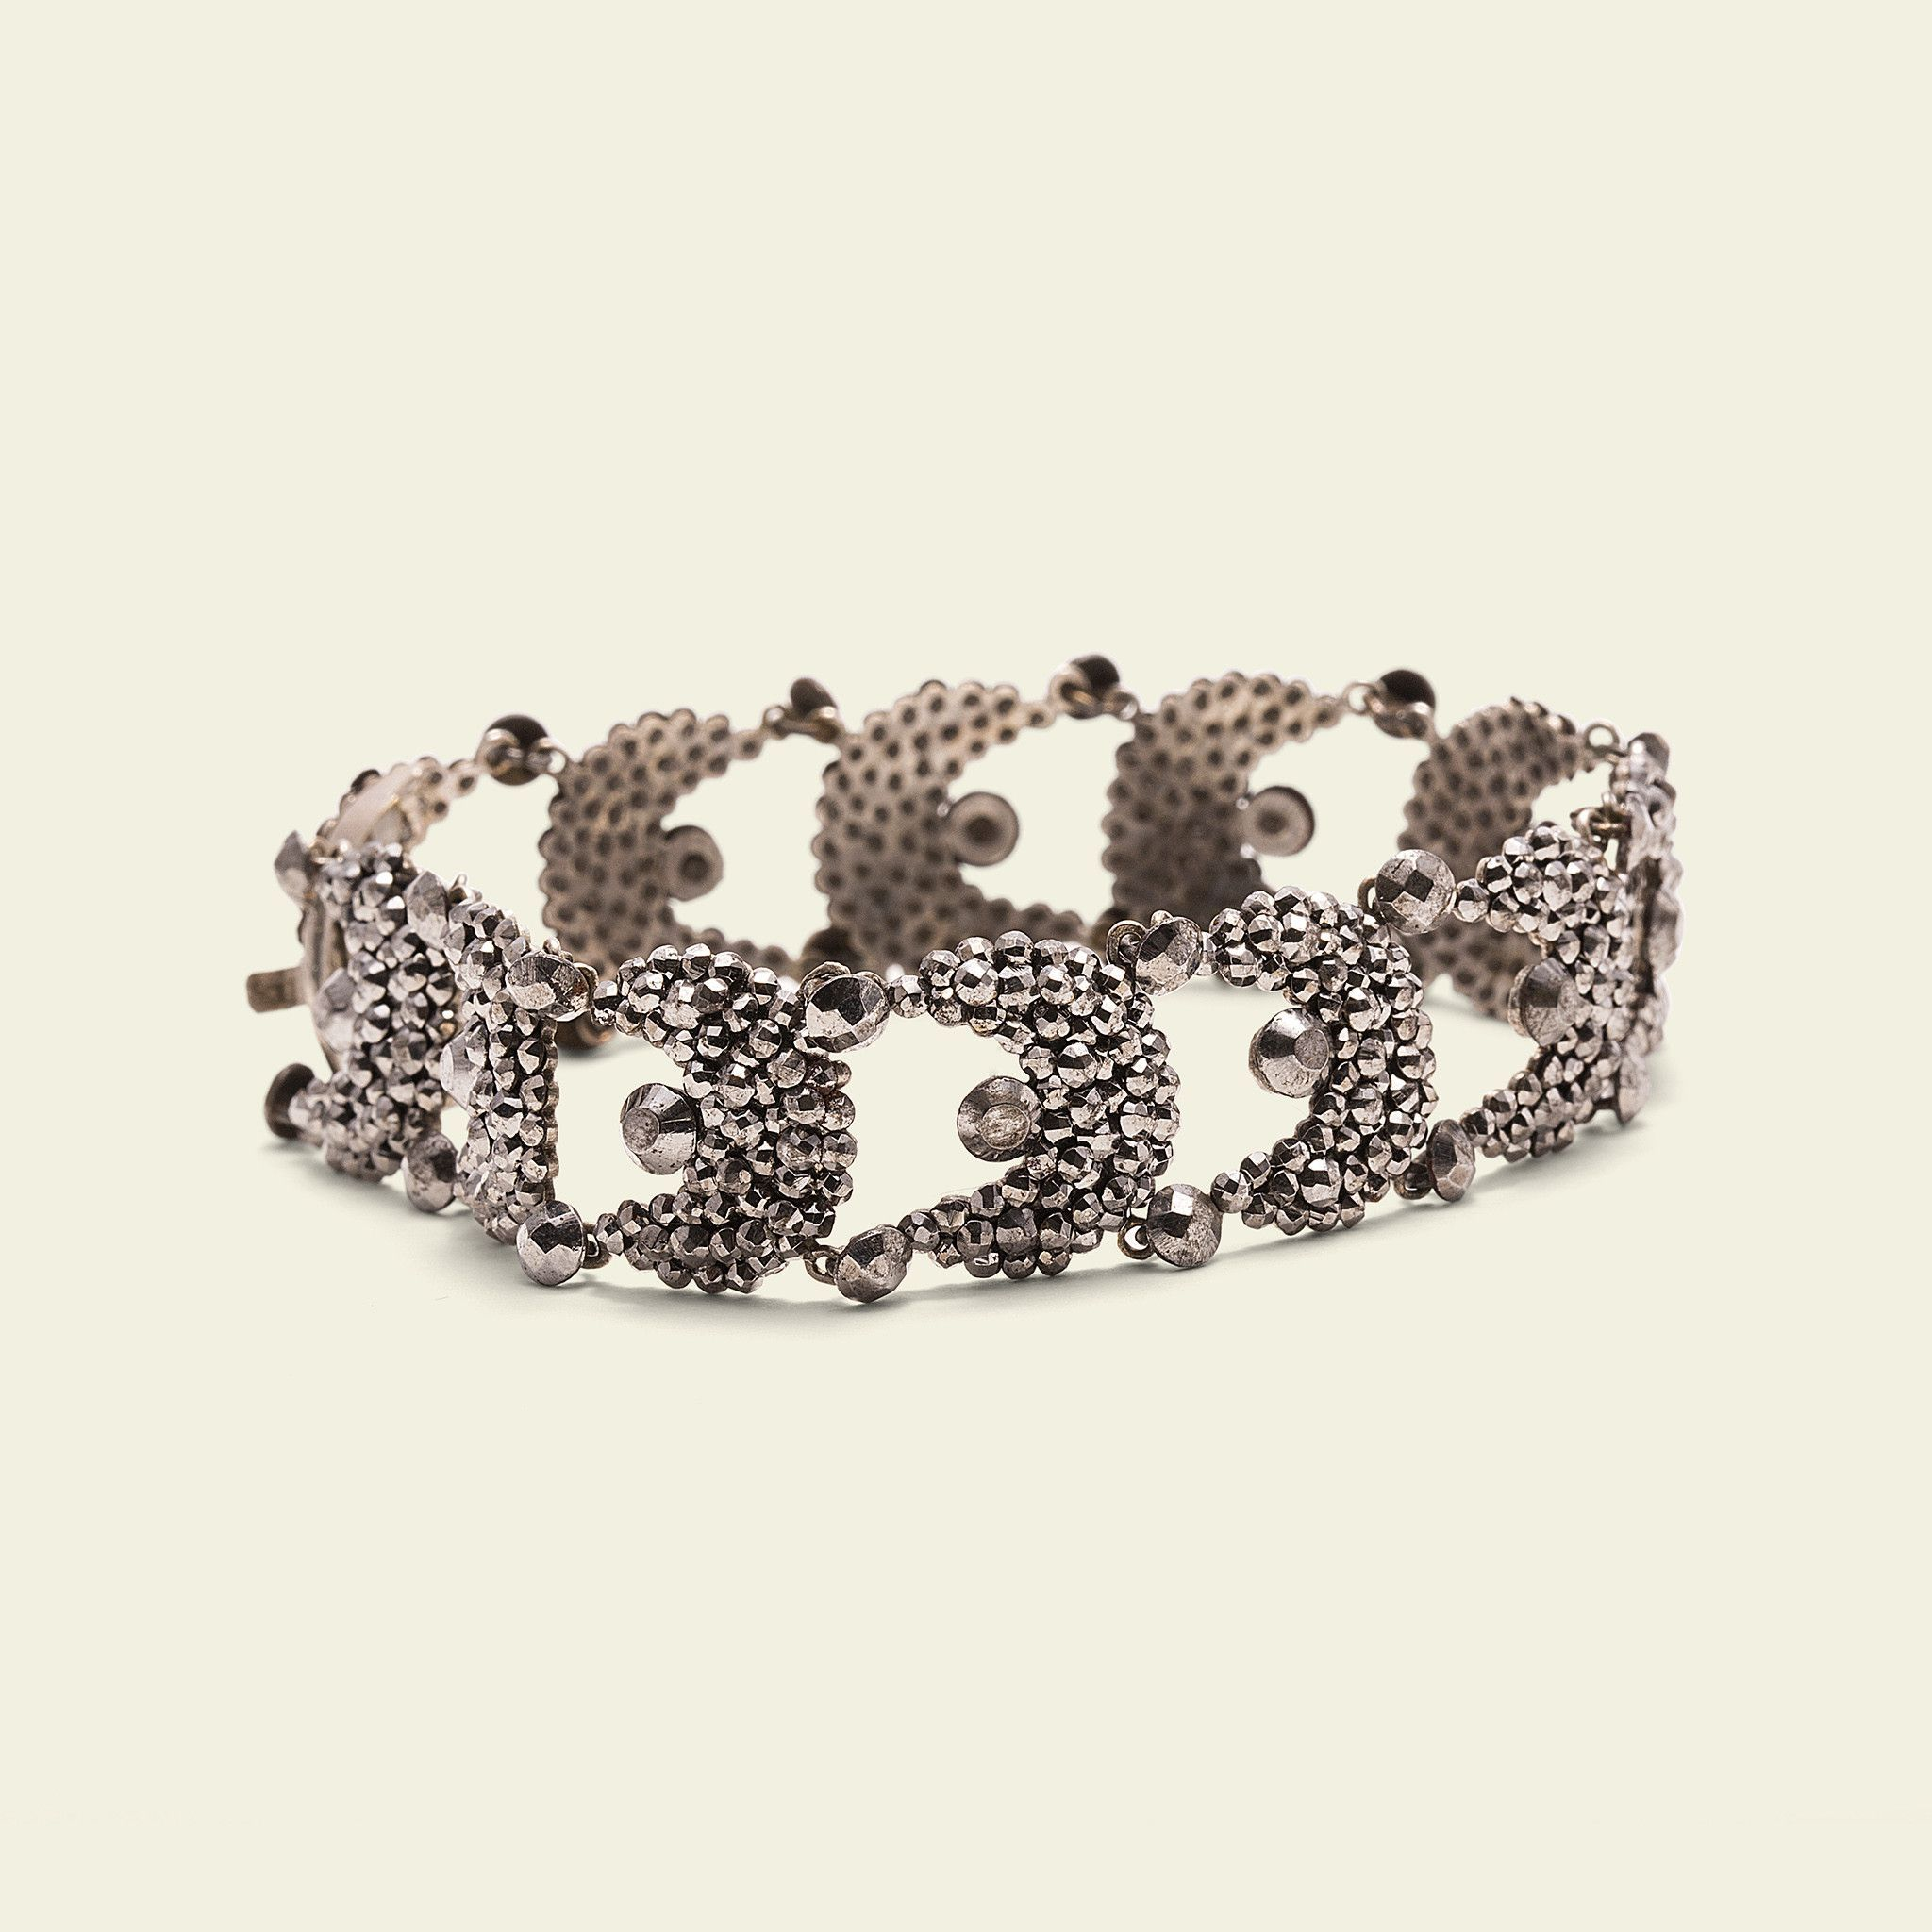 """7"""" cut steel bracelet c1800 needs small repair and oil links measure about 5/8"""" ((about))The early manufacture of cut-steel jewelry was painstaking work: each individual stud was faceted by hand and t"""